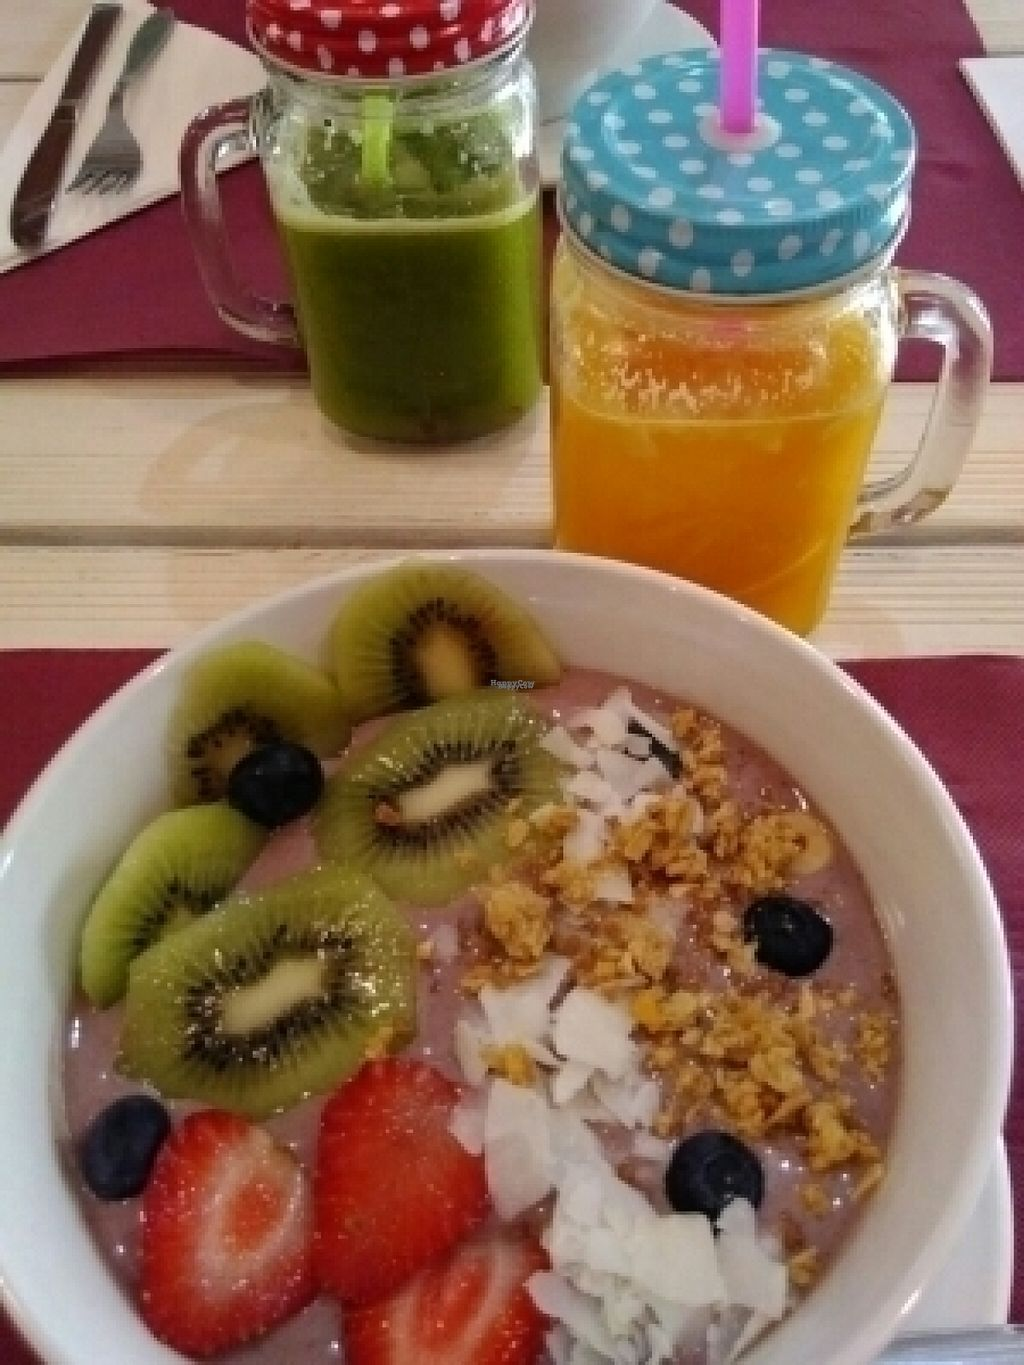 """Photo of Acai  by <a href=""""/members/profile/lou_h"""">lou_h</a> <br/>acai bowl <br/> August 18, 2016  - <a href='/contact/abuse/image/73437/169877'>Report</a>"""